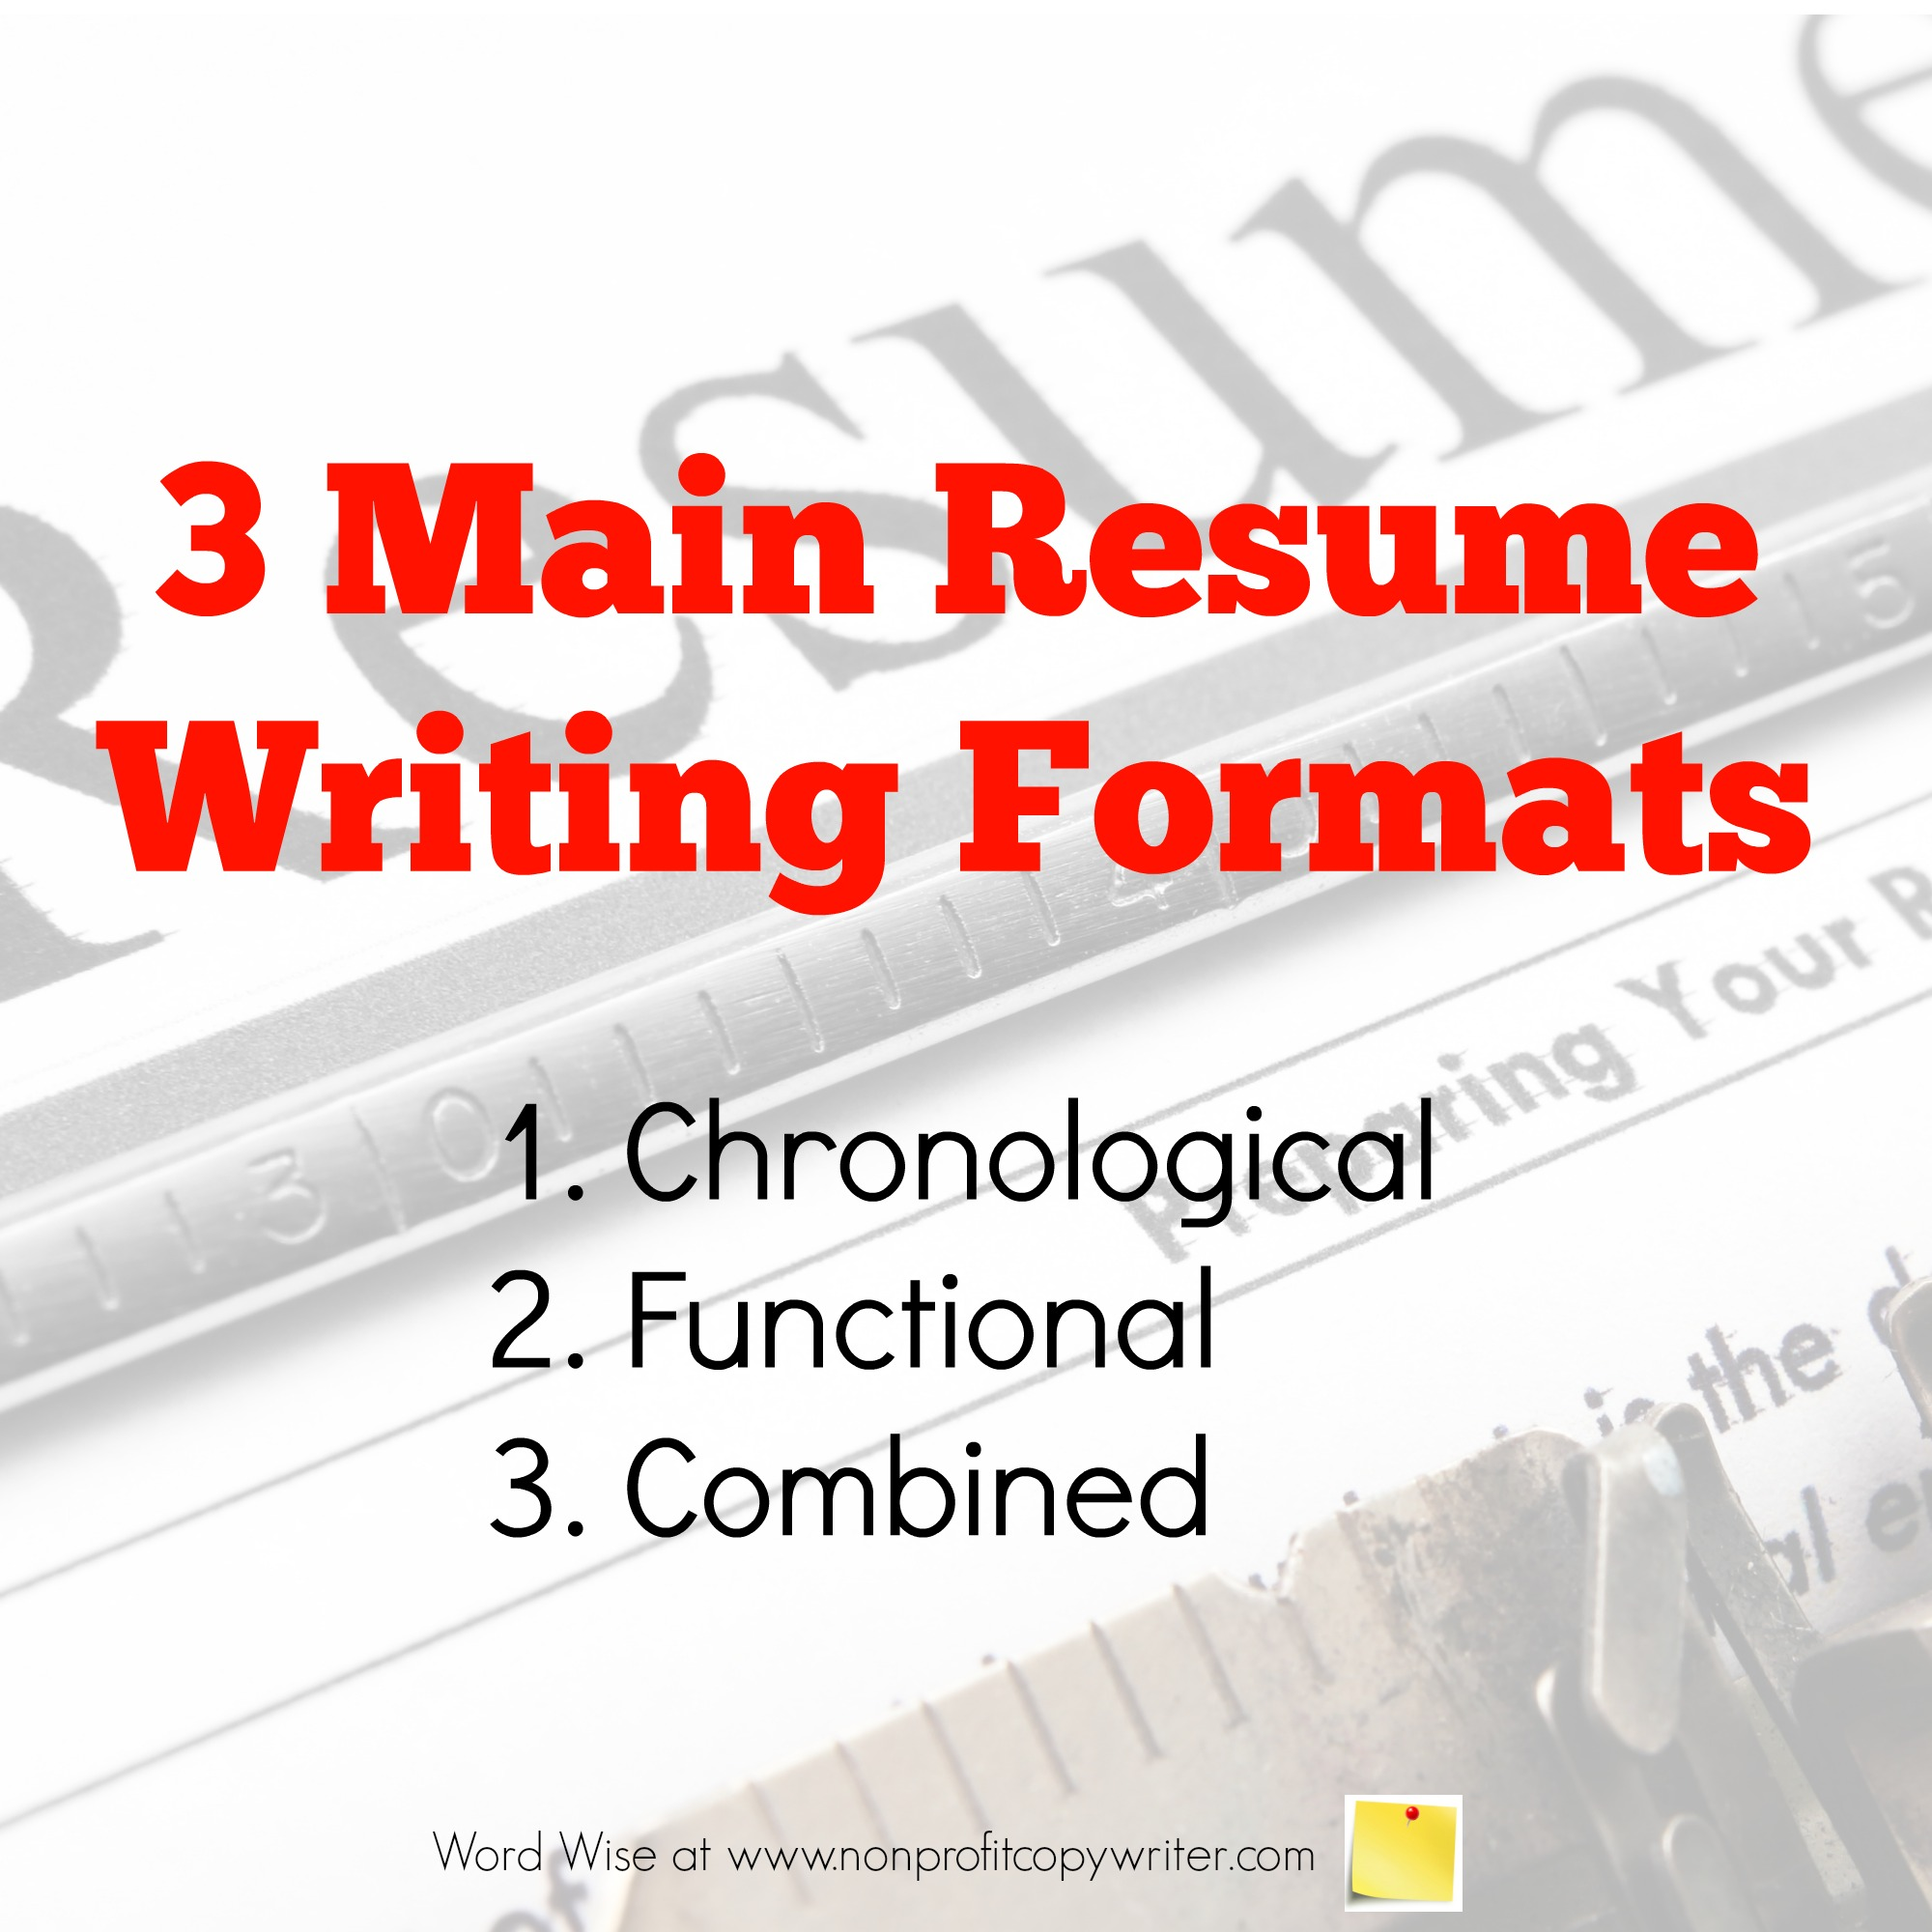 3 Main Resume Writing Formats with Word Wise at Nonprofit Copywriter